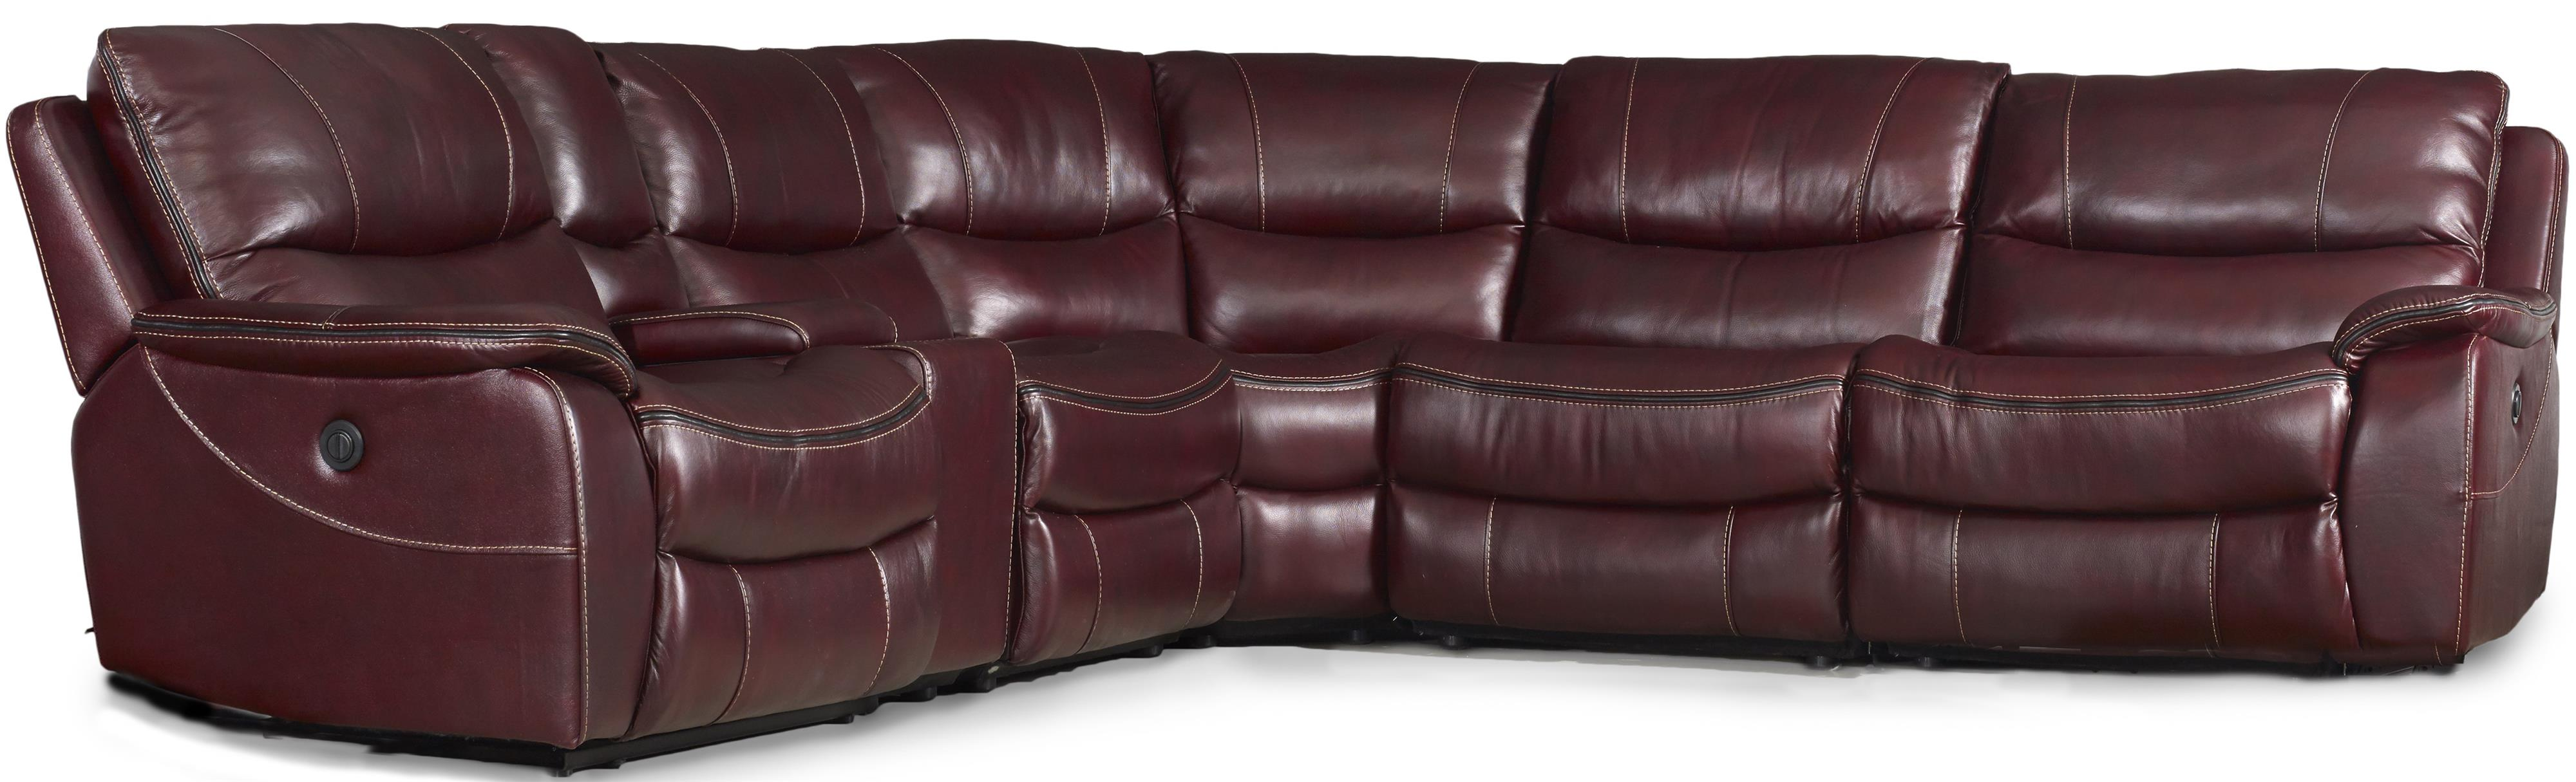 Hooker Furniture Ss624 6 Piece Power Reclining Sectional With Usb .